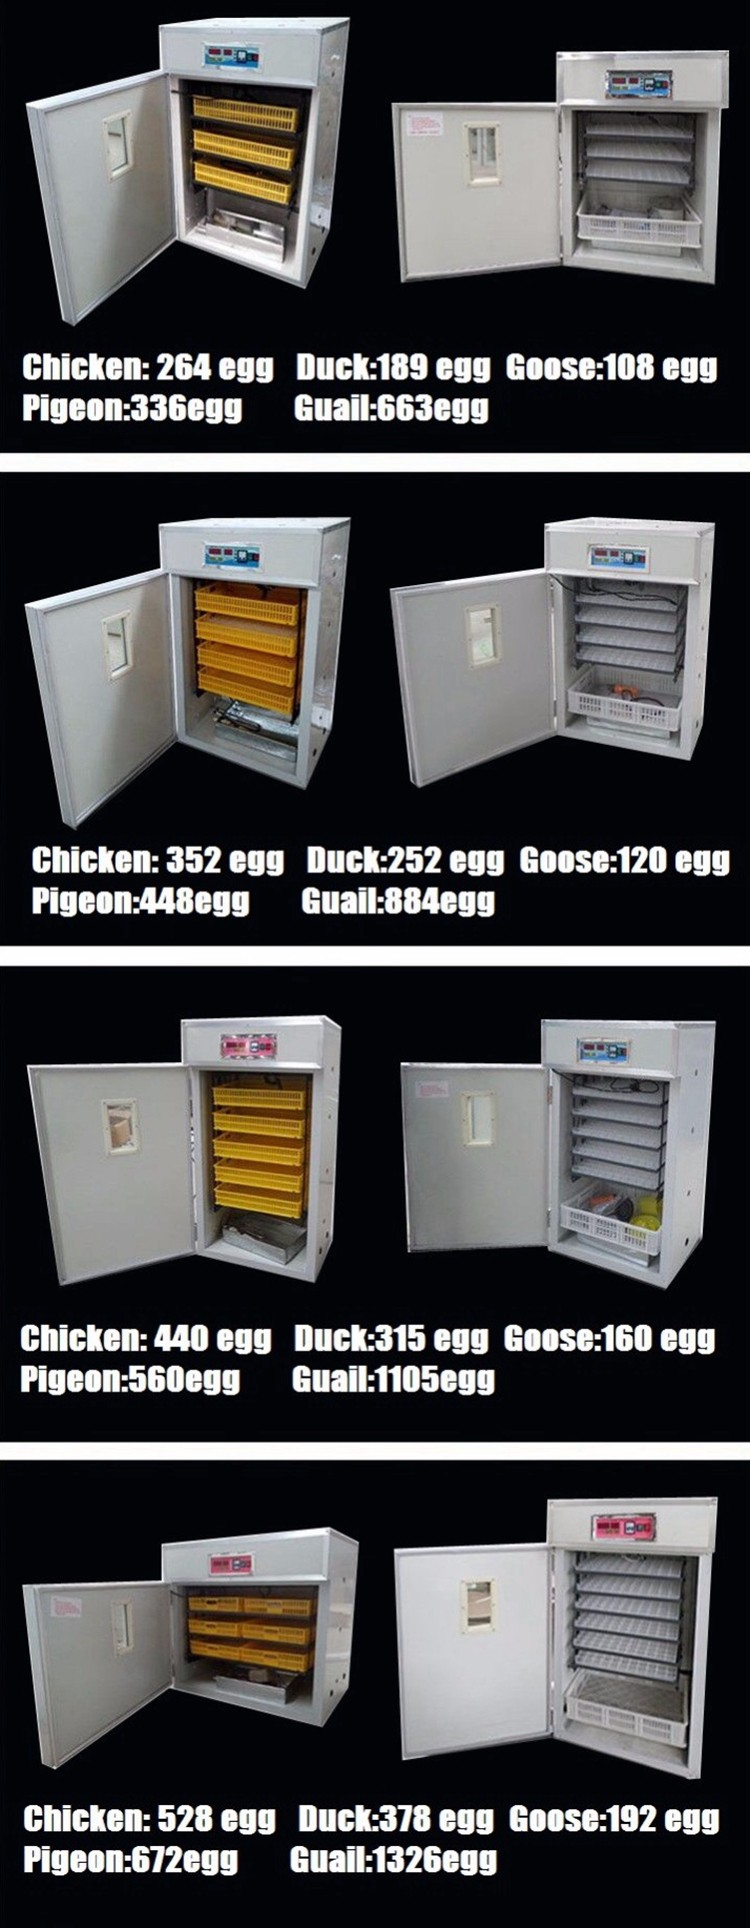 Egg Incubator Diagram For Poultry